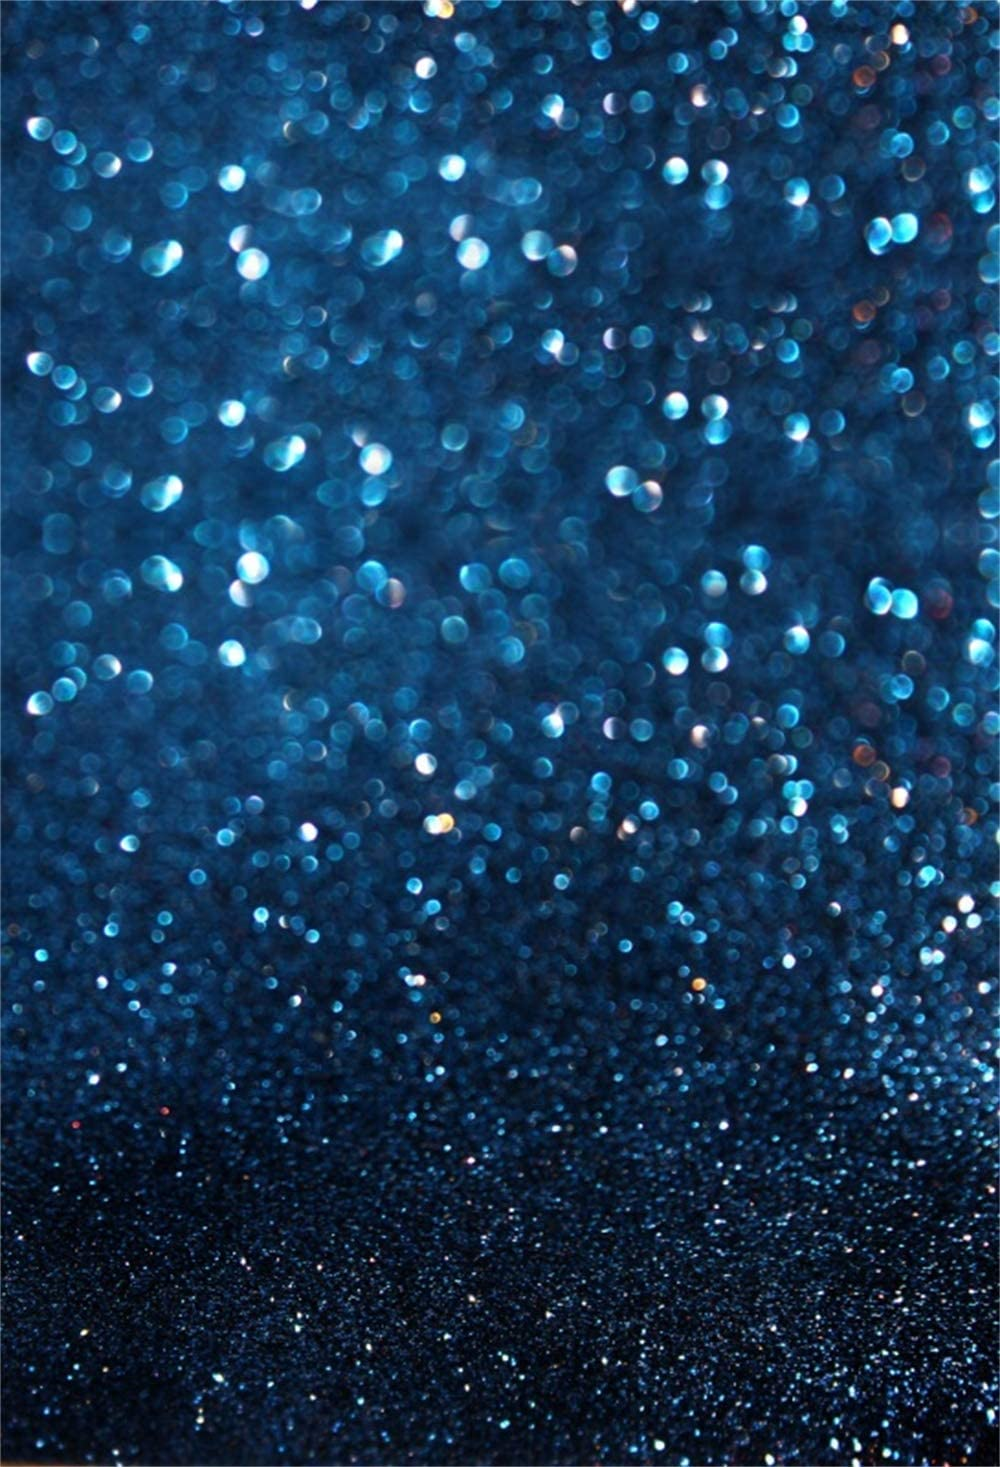 Dim Blue Glitter Bokeh Haloes Backdrop Polyester 6.5x10ft Valentines Day Wedding Photography Background Child Kids Newborn Lovers Adult Portrait Shoot Studio Photo Props